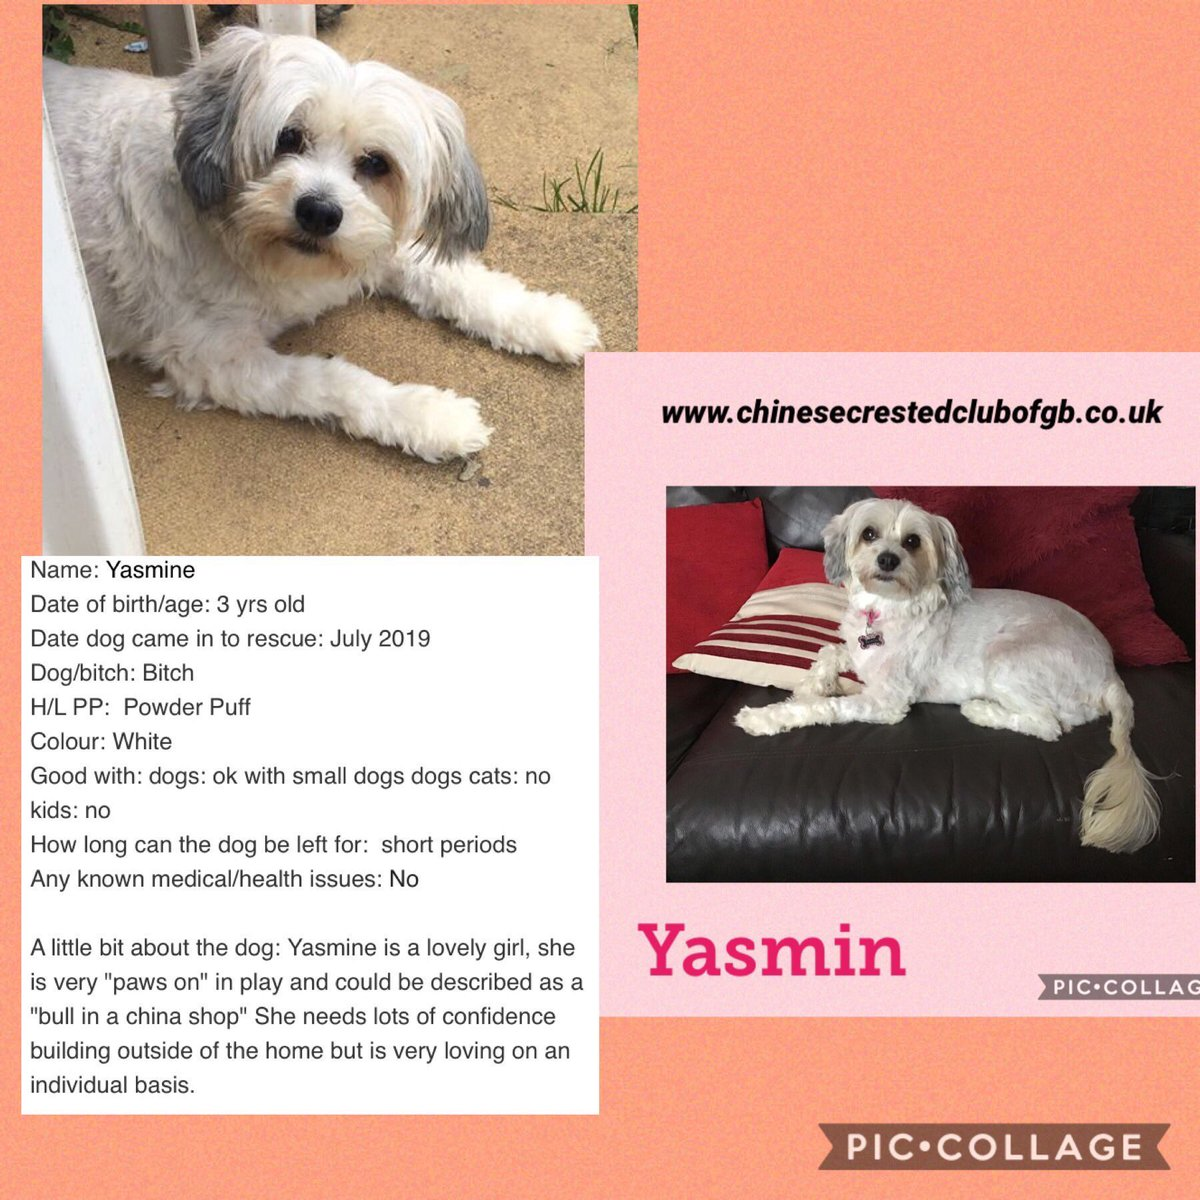 #WednesdayWisdom #WednesdayThoughts  #pretty little poppet #Yasmin will be looking for a super duper home after #Lockdown is over #TeamZay #itsallaboutthedogs @CCCGBR